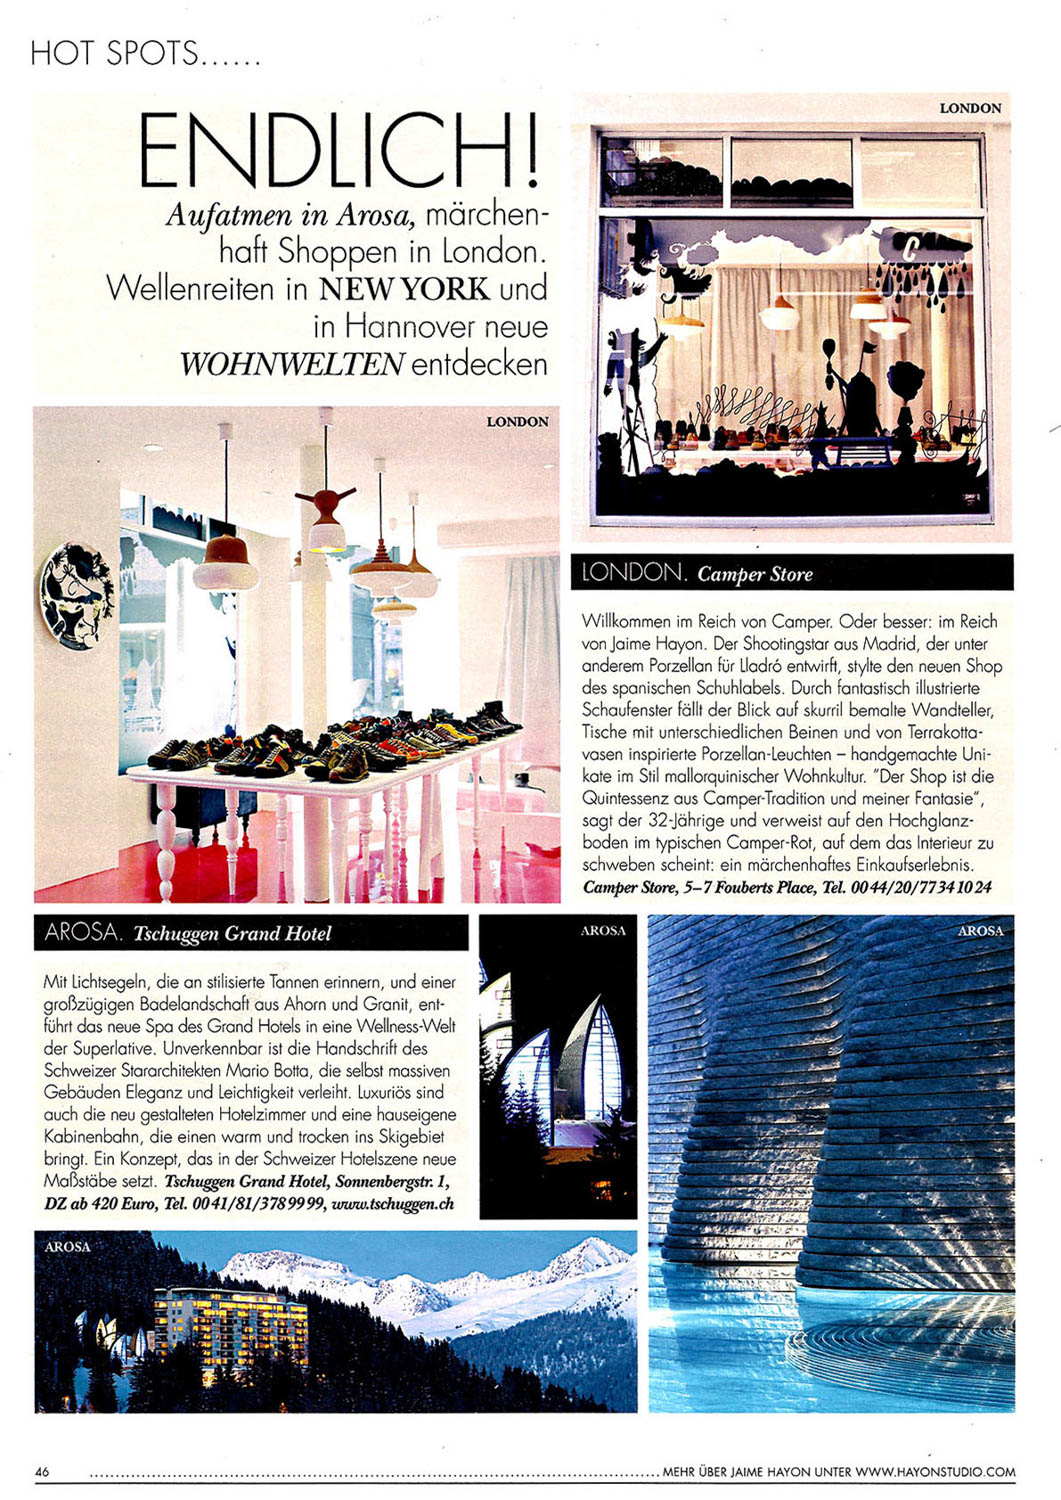 Eine Kleine Küche In New York Texts Julia Weidner Illustrations Munich Fashion Beauty